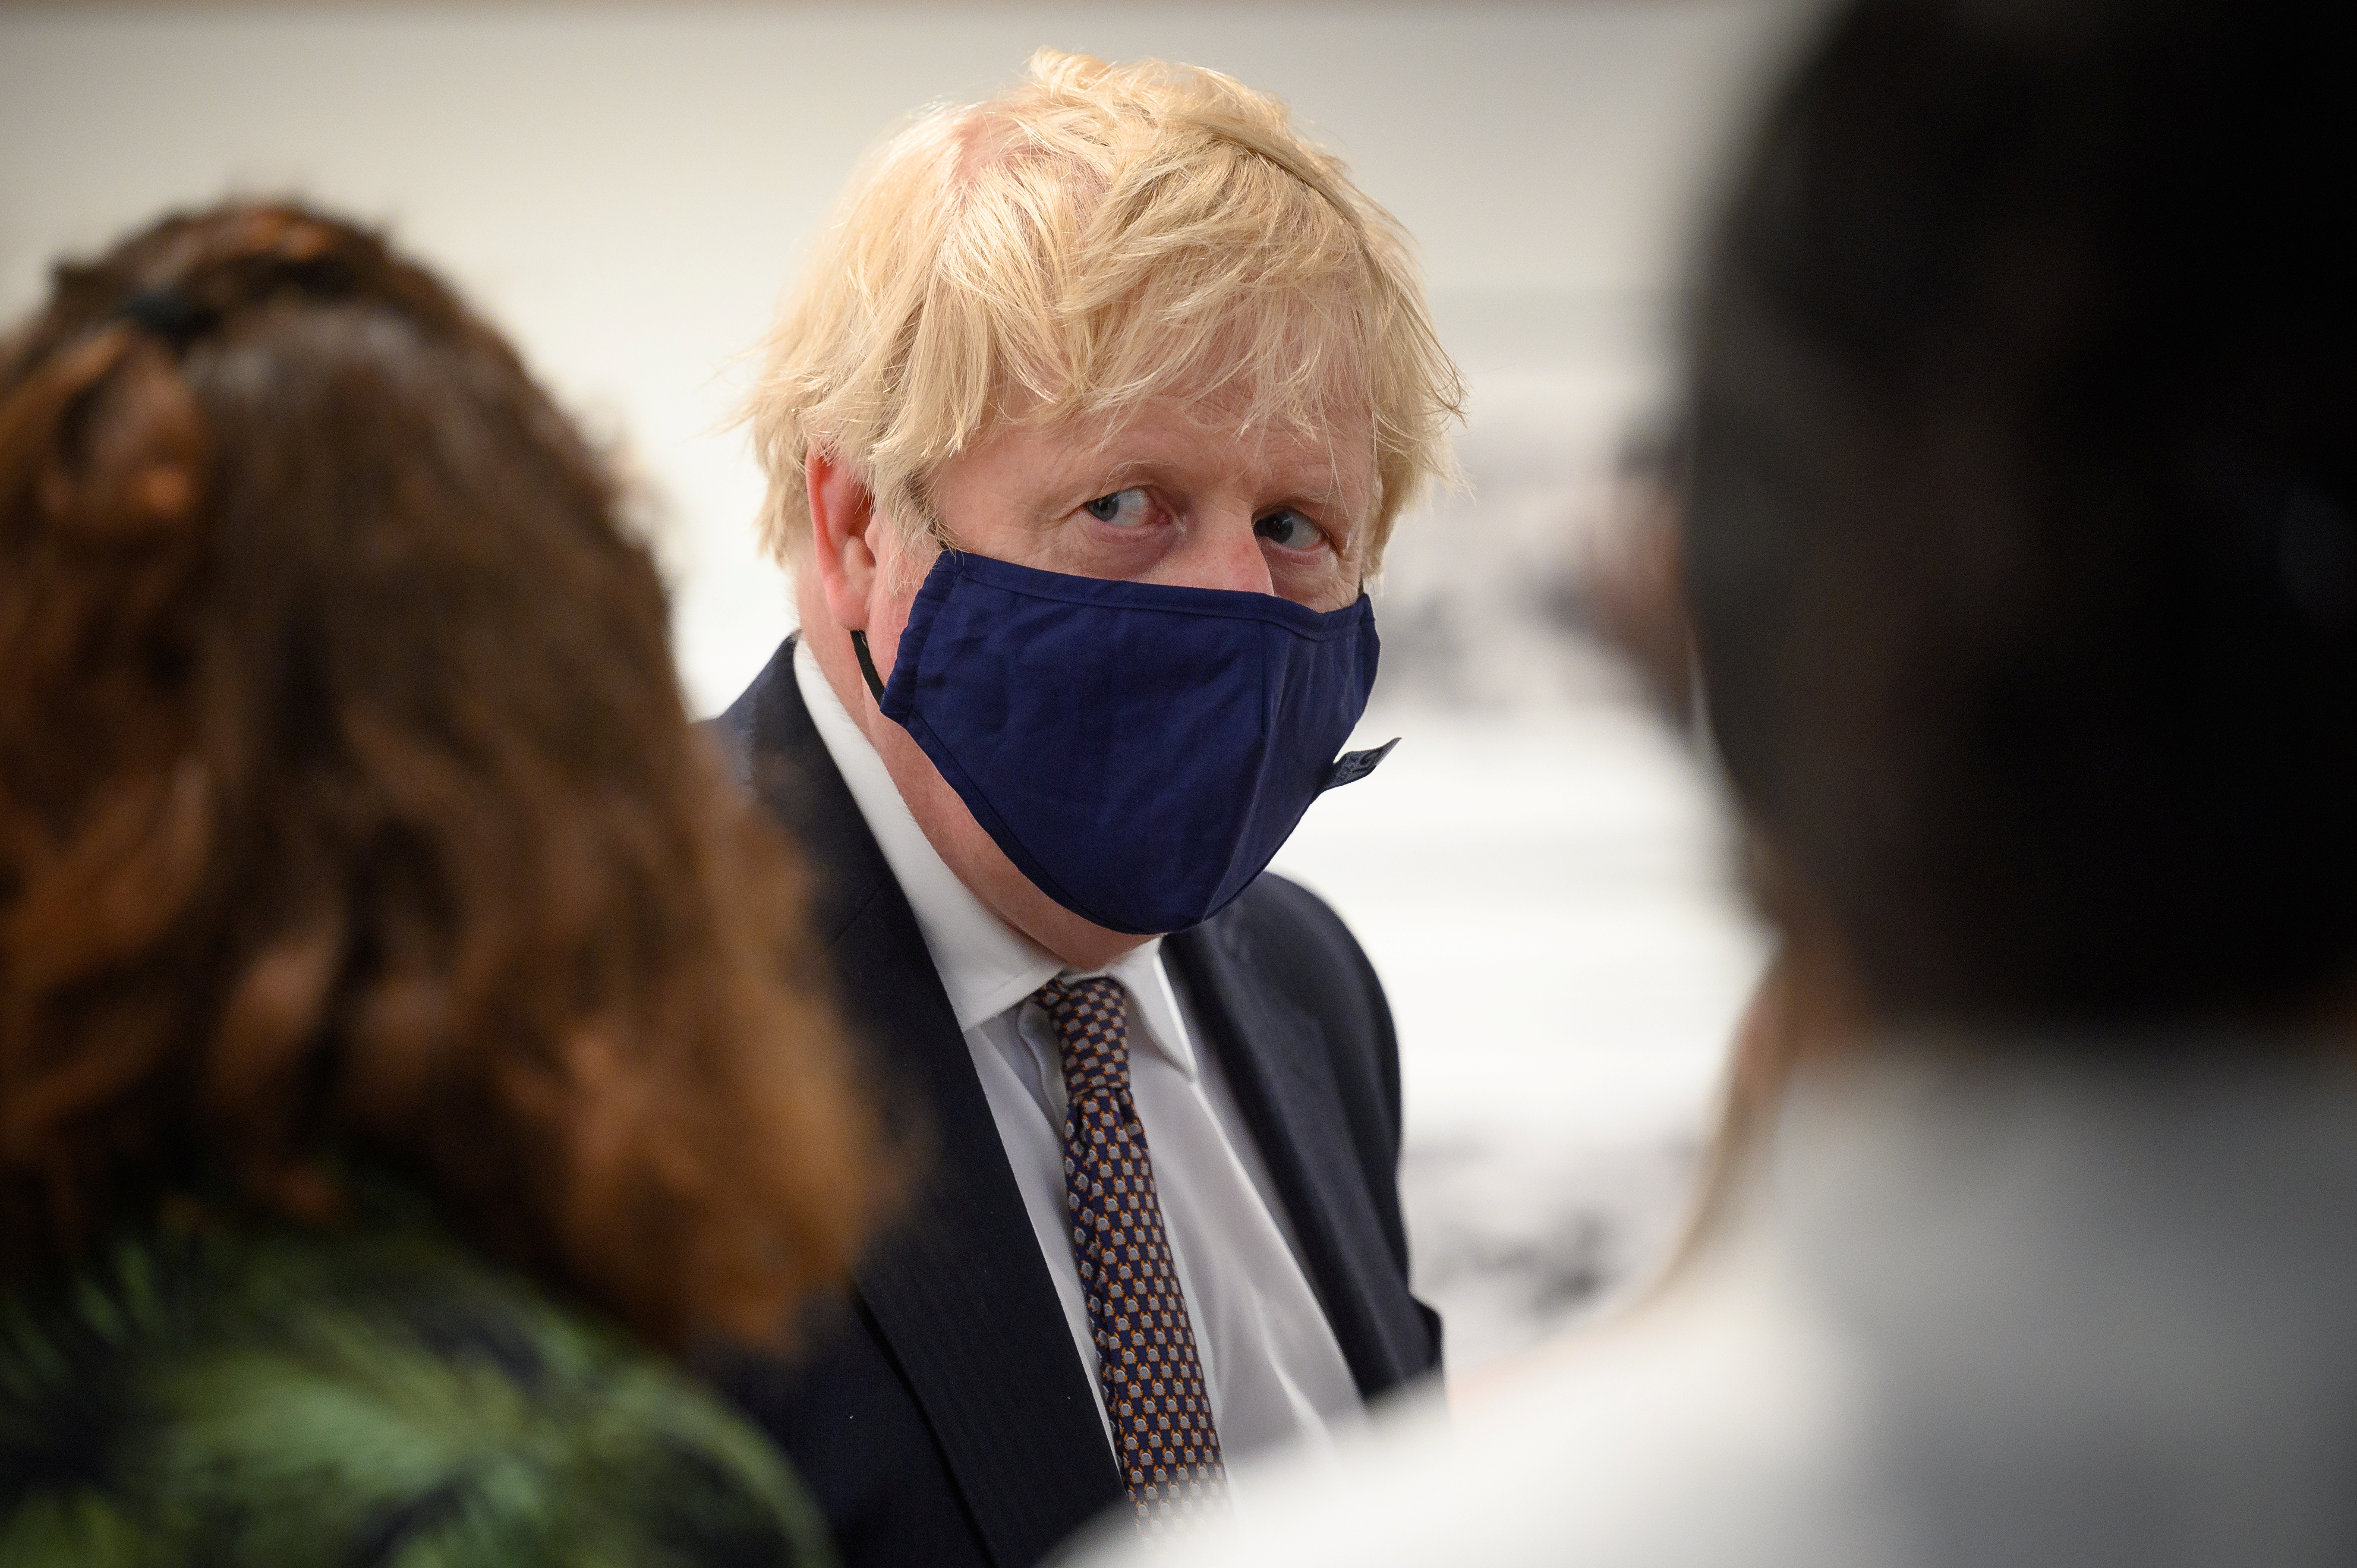 British Prime Minister Boris Johnson discusses the foreign aid cap with a member of an engagement group during a visit to Falmouth's Maritime Museum to meet volunteers and to thank them for hosting the media centre for the G7 Summit, in Falmouth, Britain June 10, 2021. Leon Neal/Pool via REUTERS